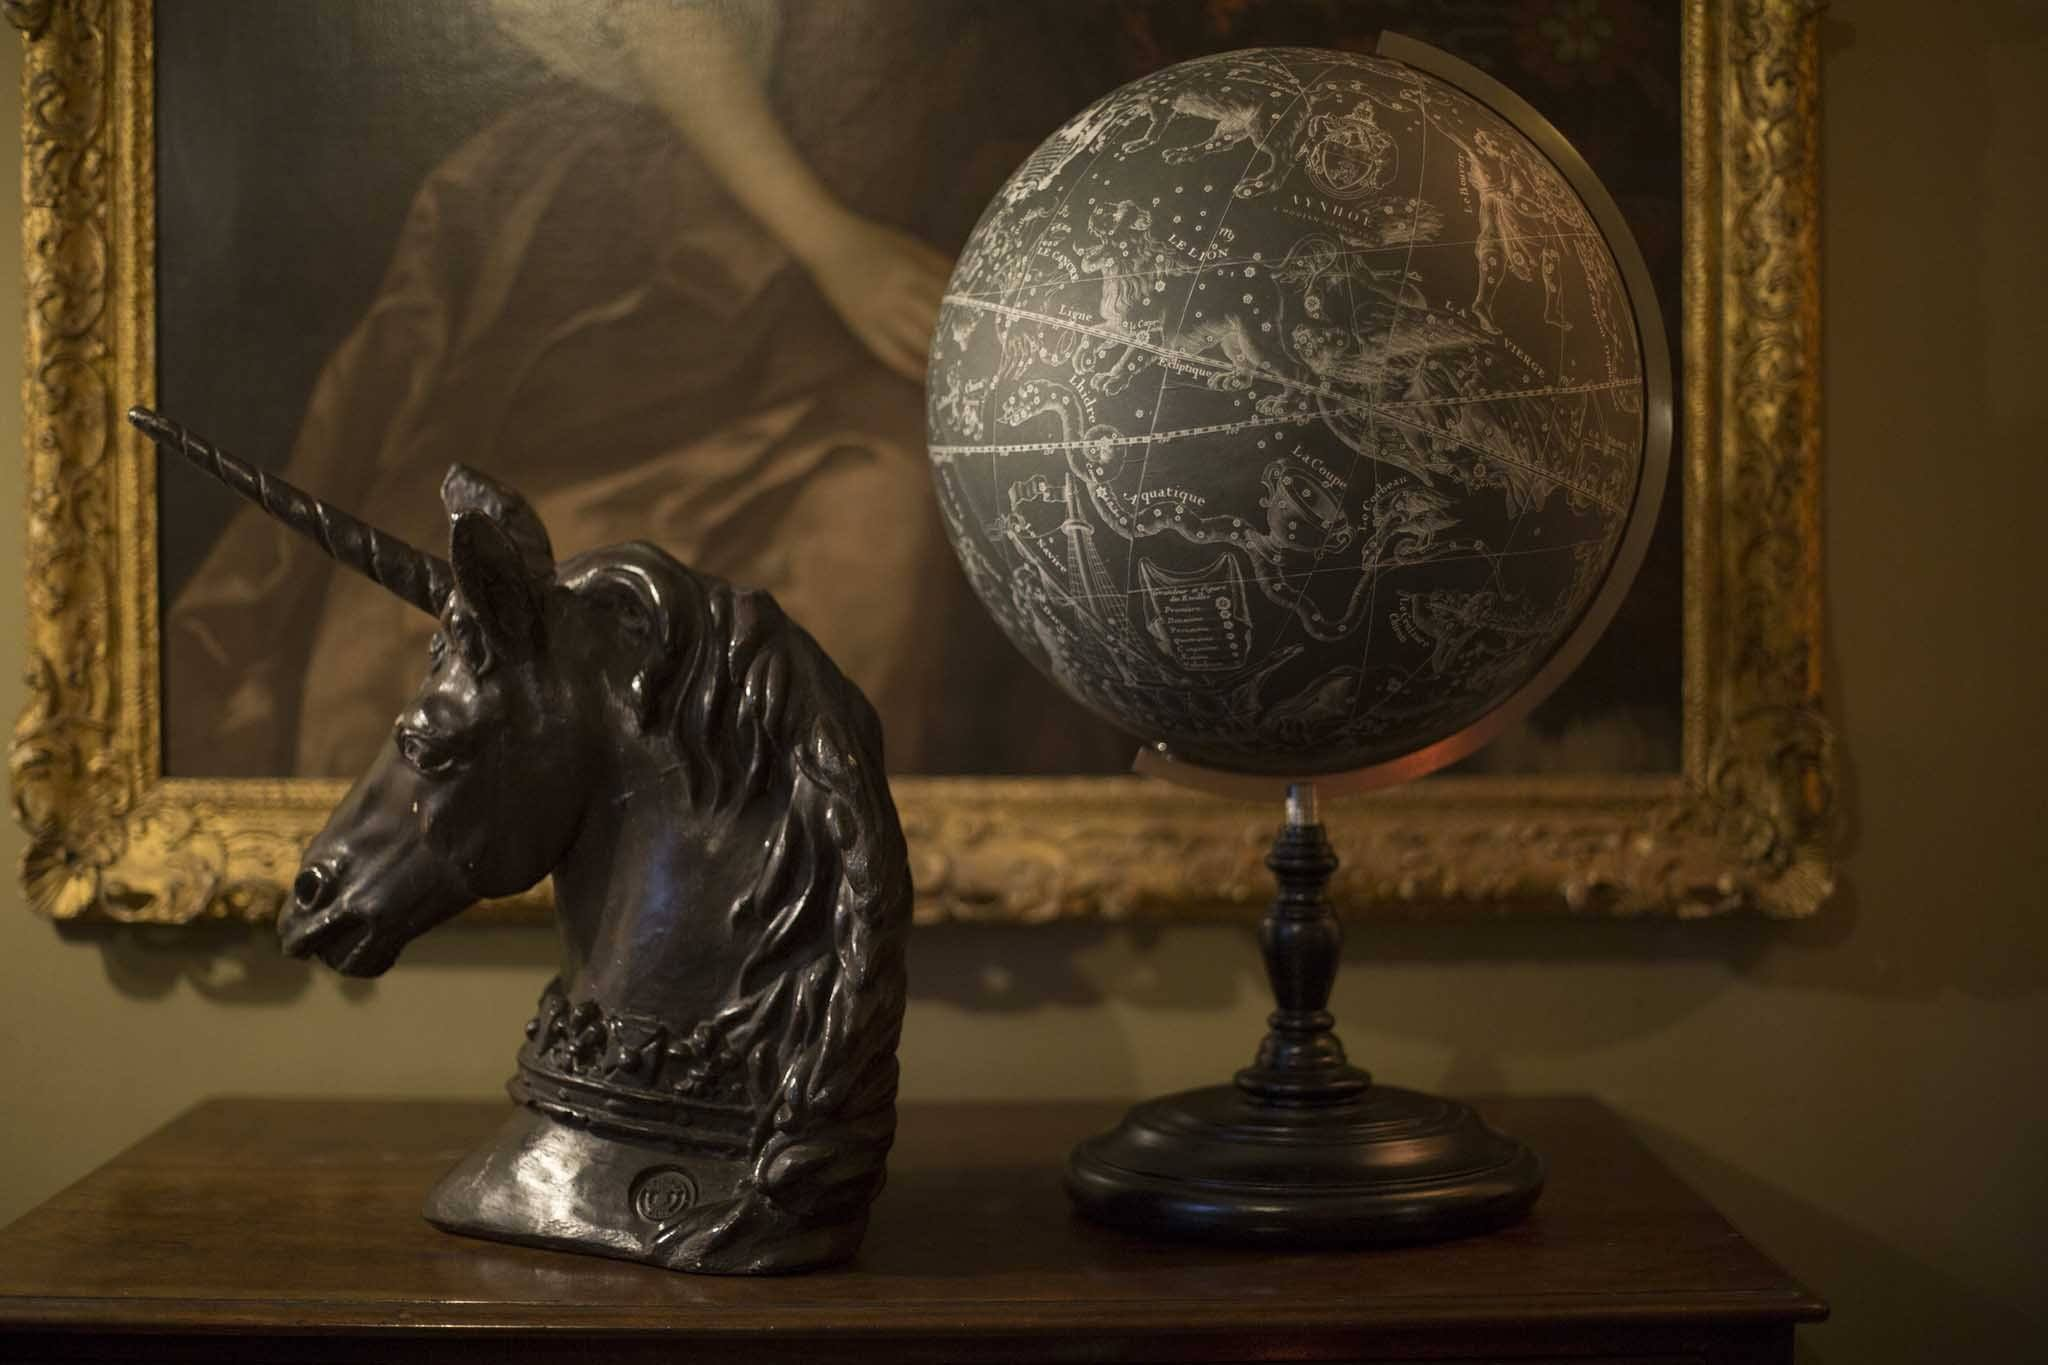 Black plaster Aynhoe unicorn - A Modern Grand Tour